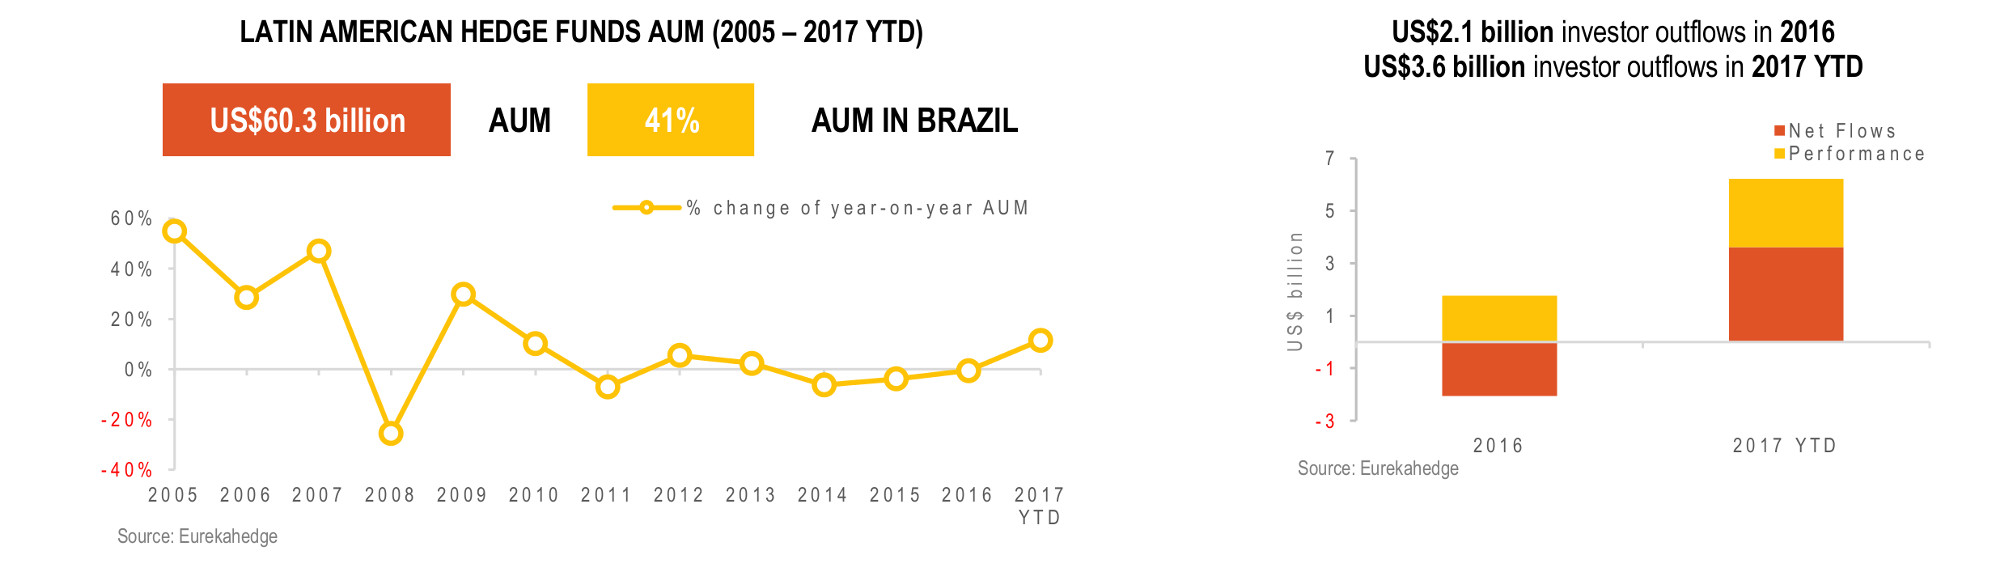 Latin American Hedge Fund Infographic November 2017- AUM